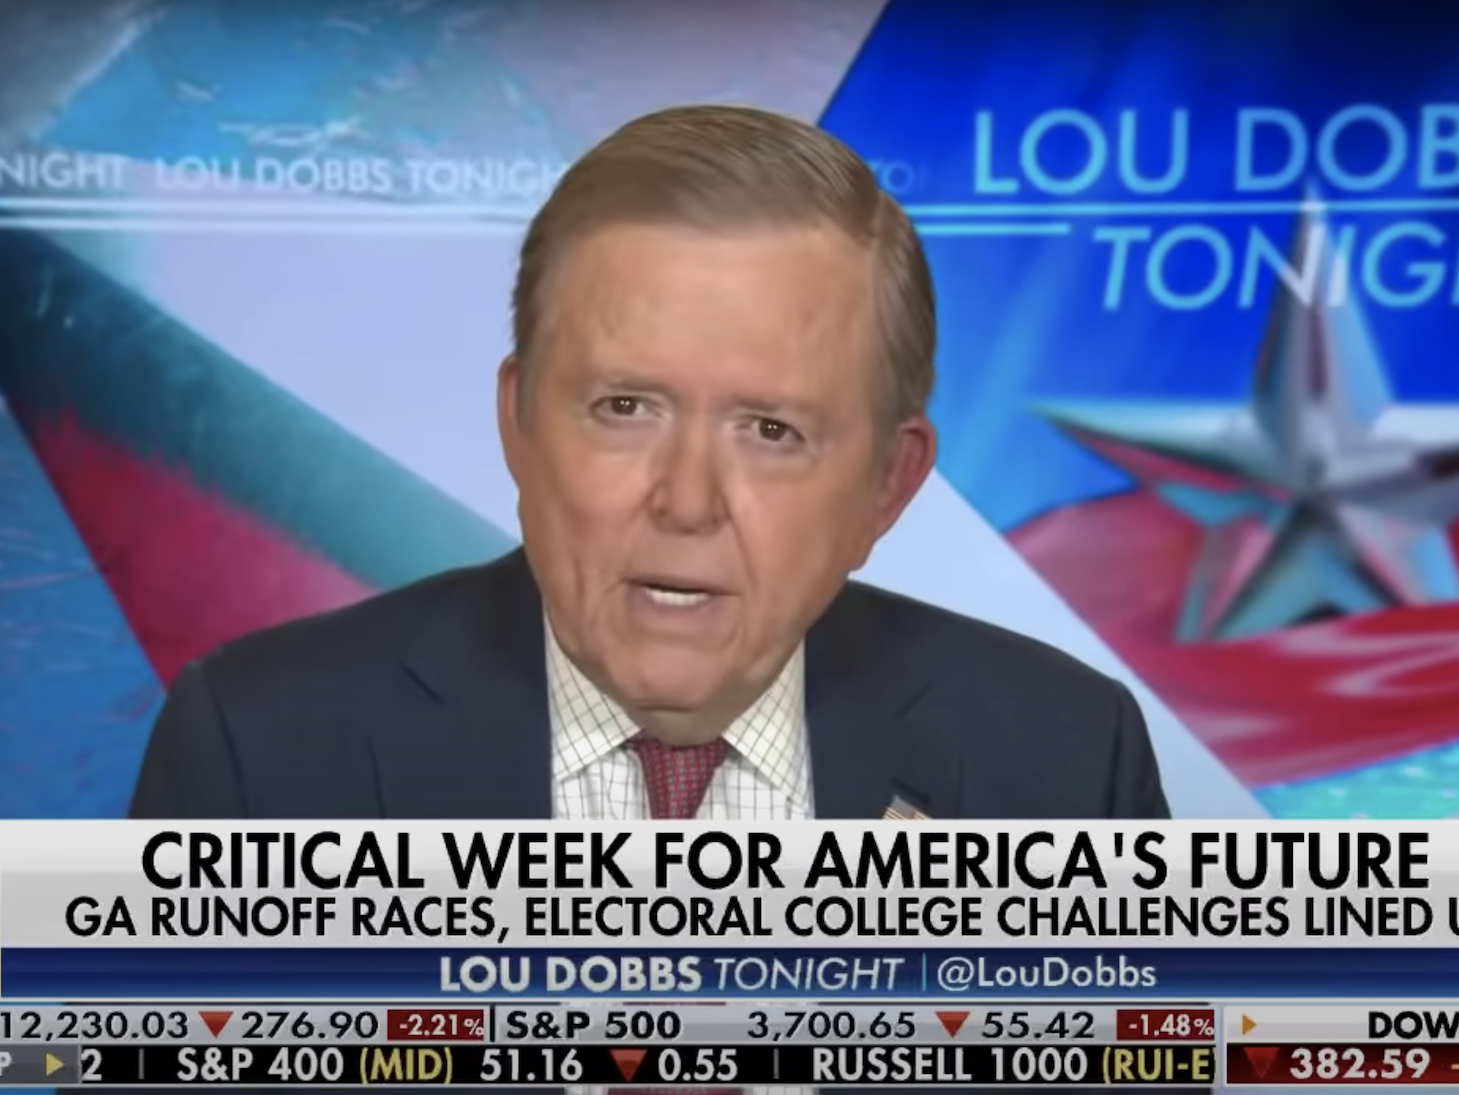 Fox host Lou Dobbs complained that he can't get 'true proof' of voter fraud, but kept pushing the discredited theory anyway